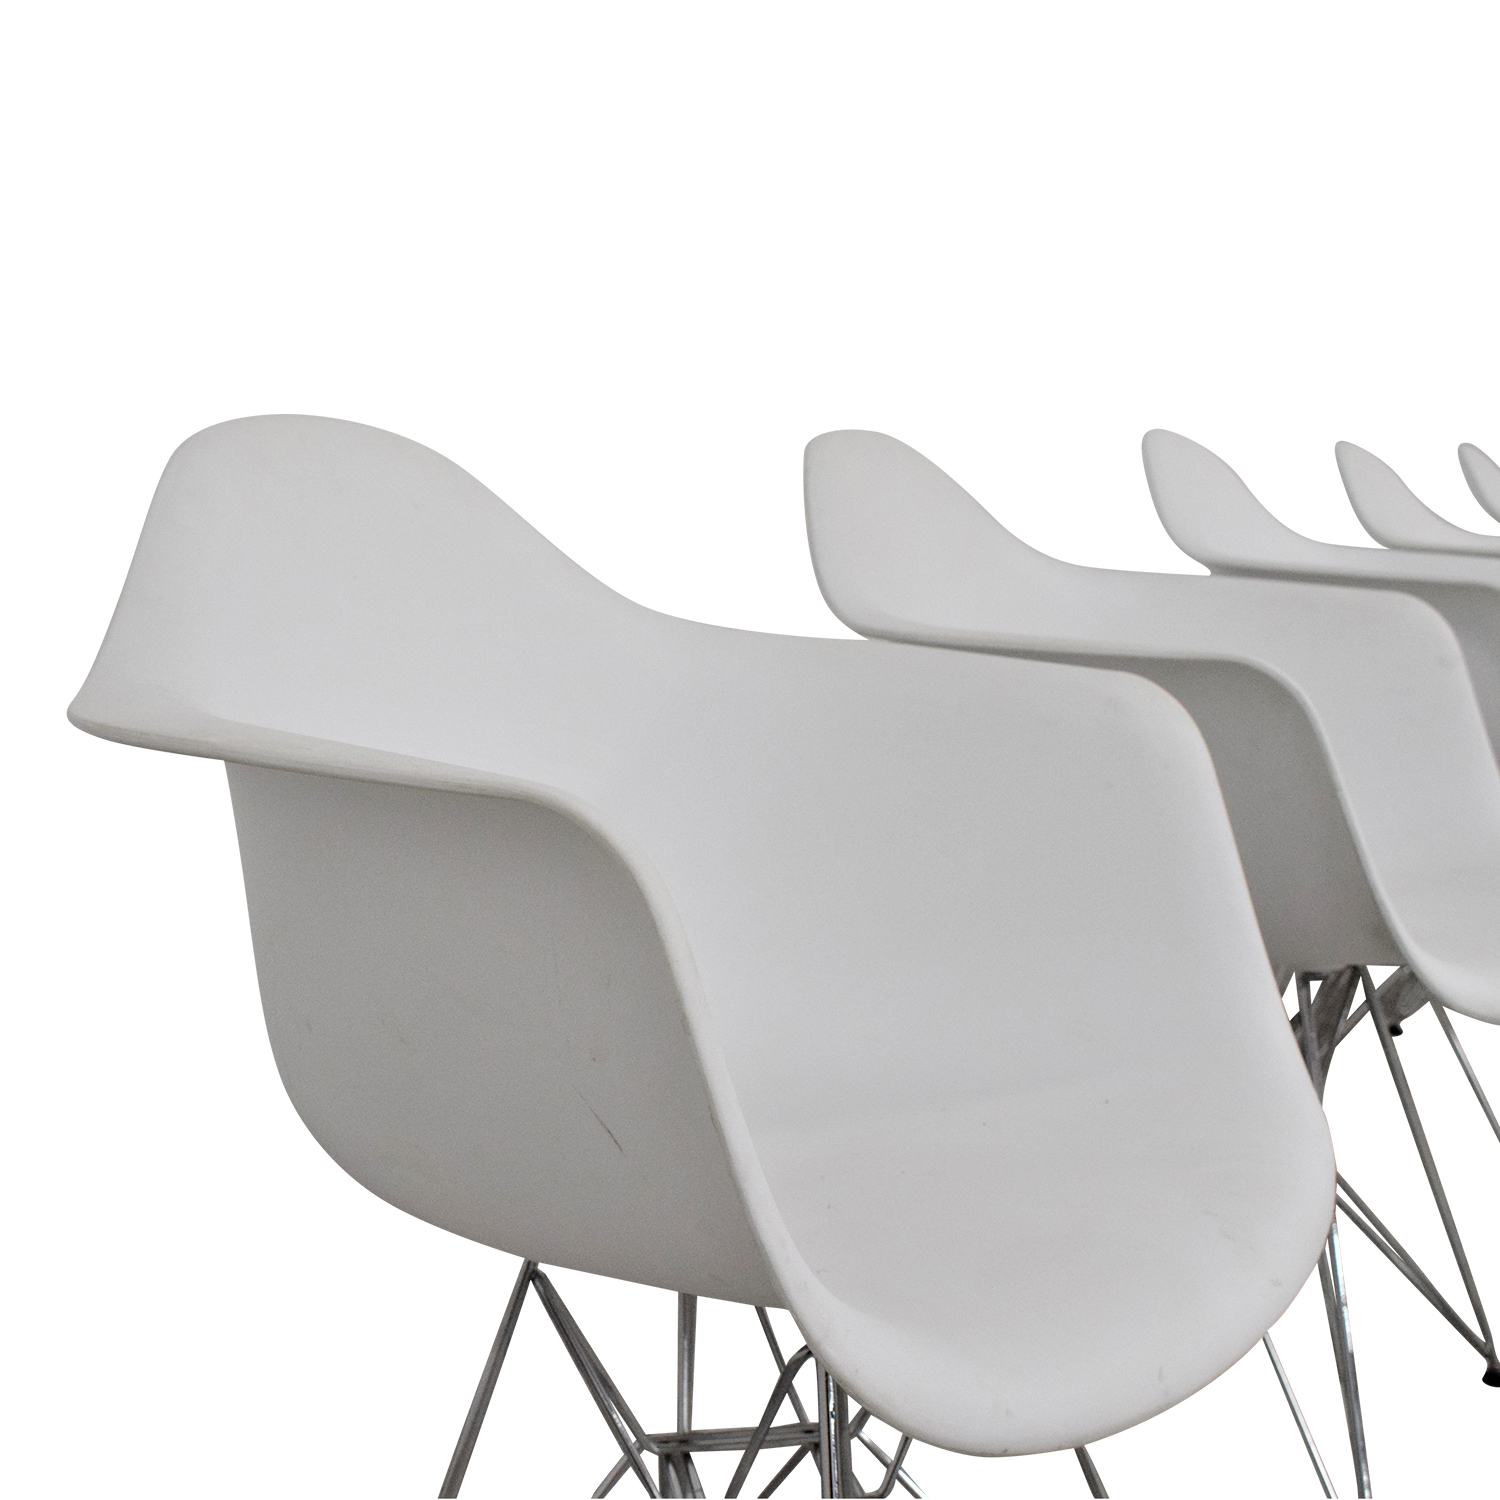 Modway Modway Paris Dining Chairs price